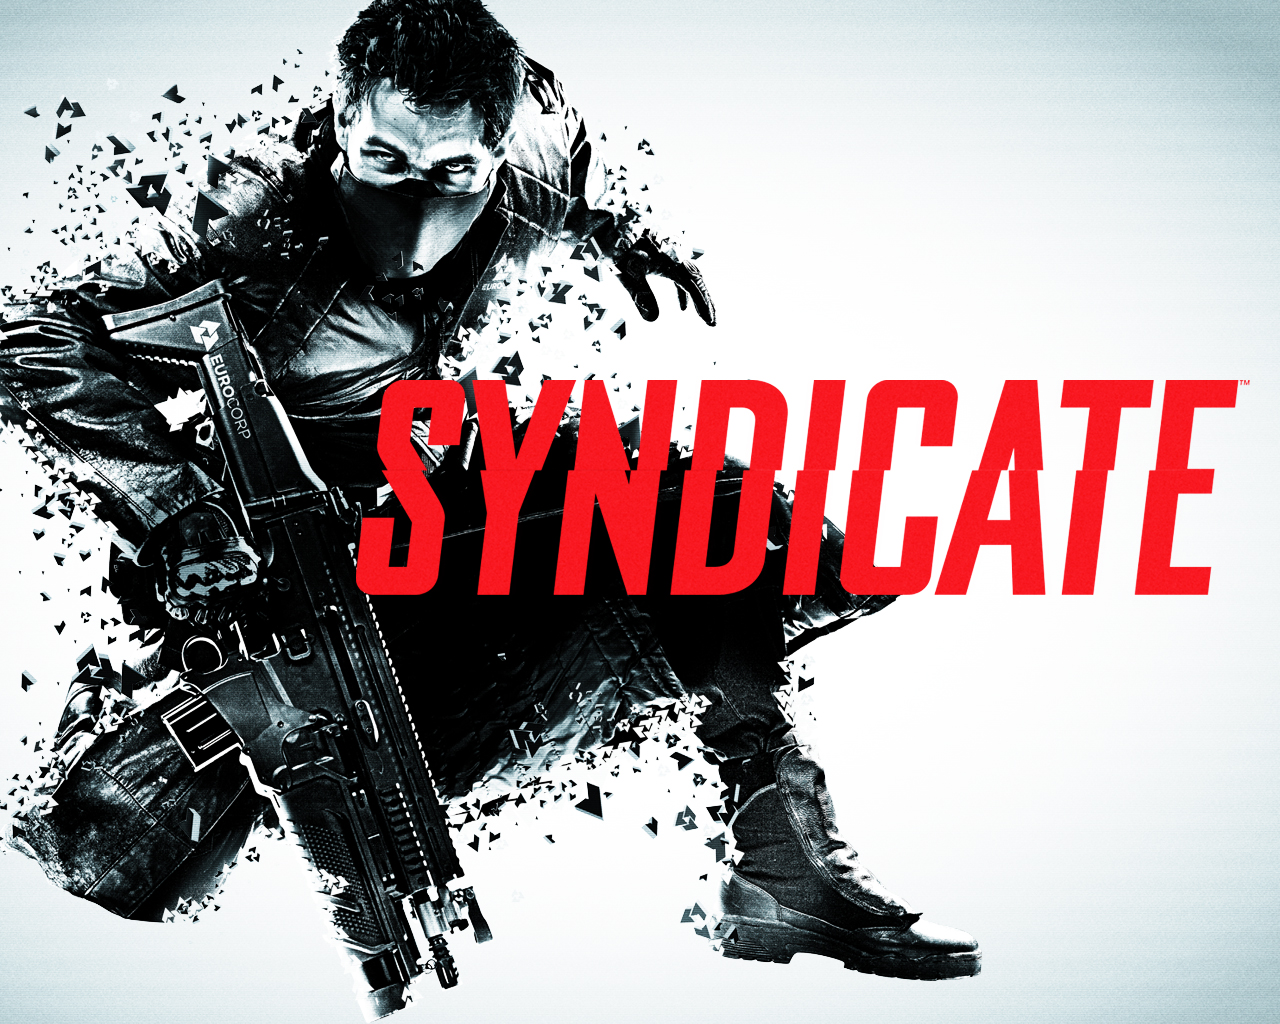 2012 Syndicate Game 2352.85 Kb